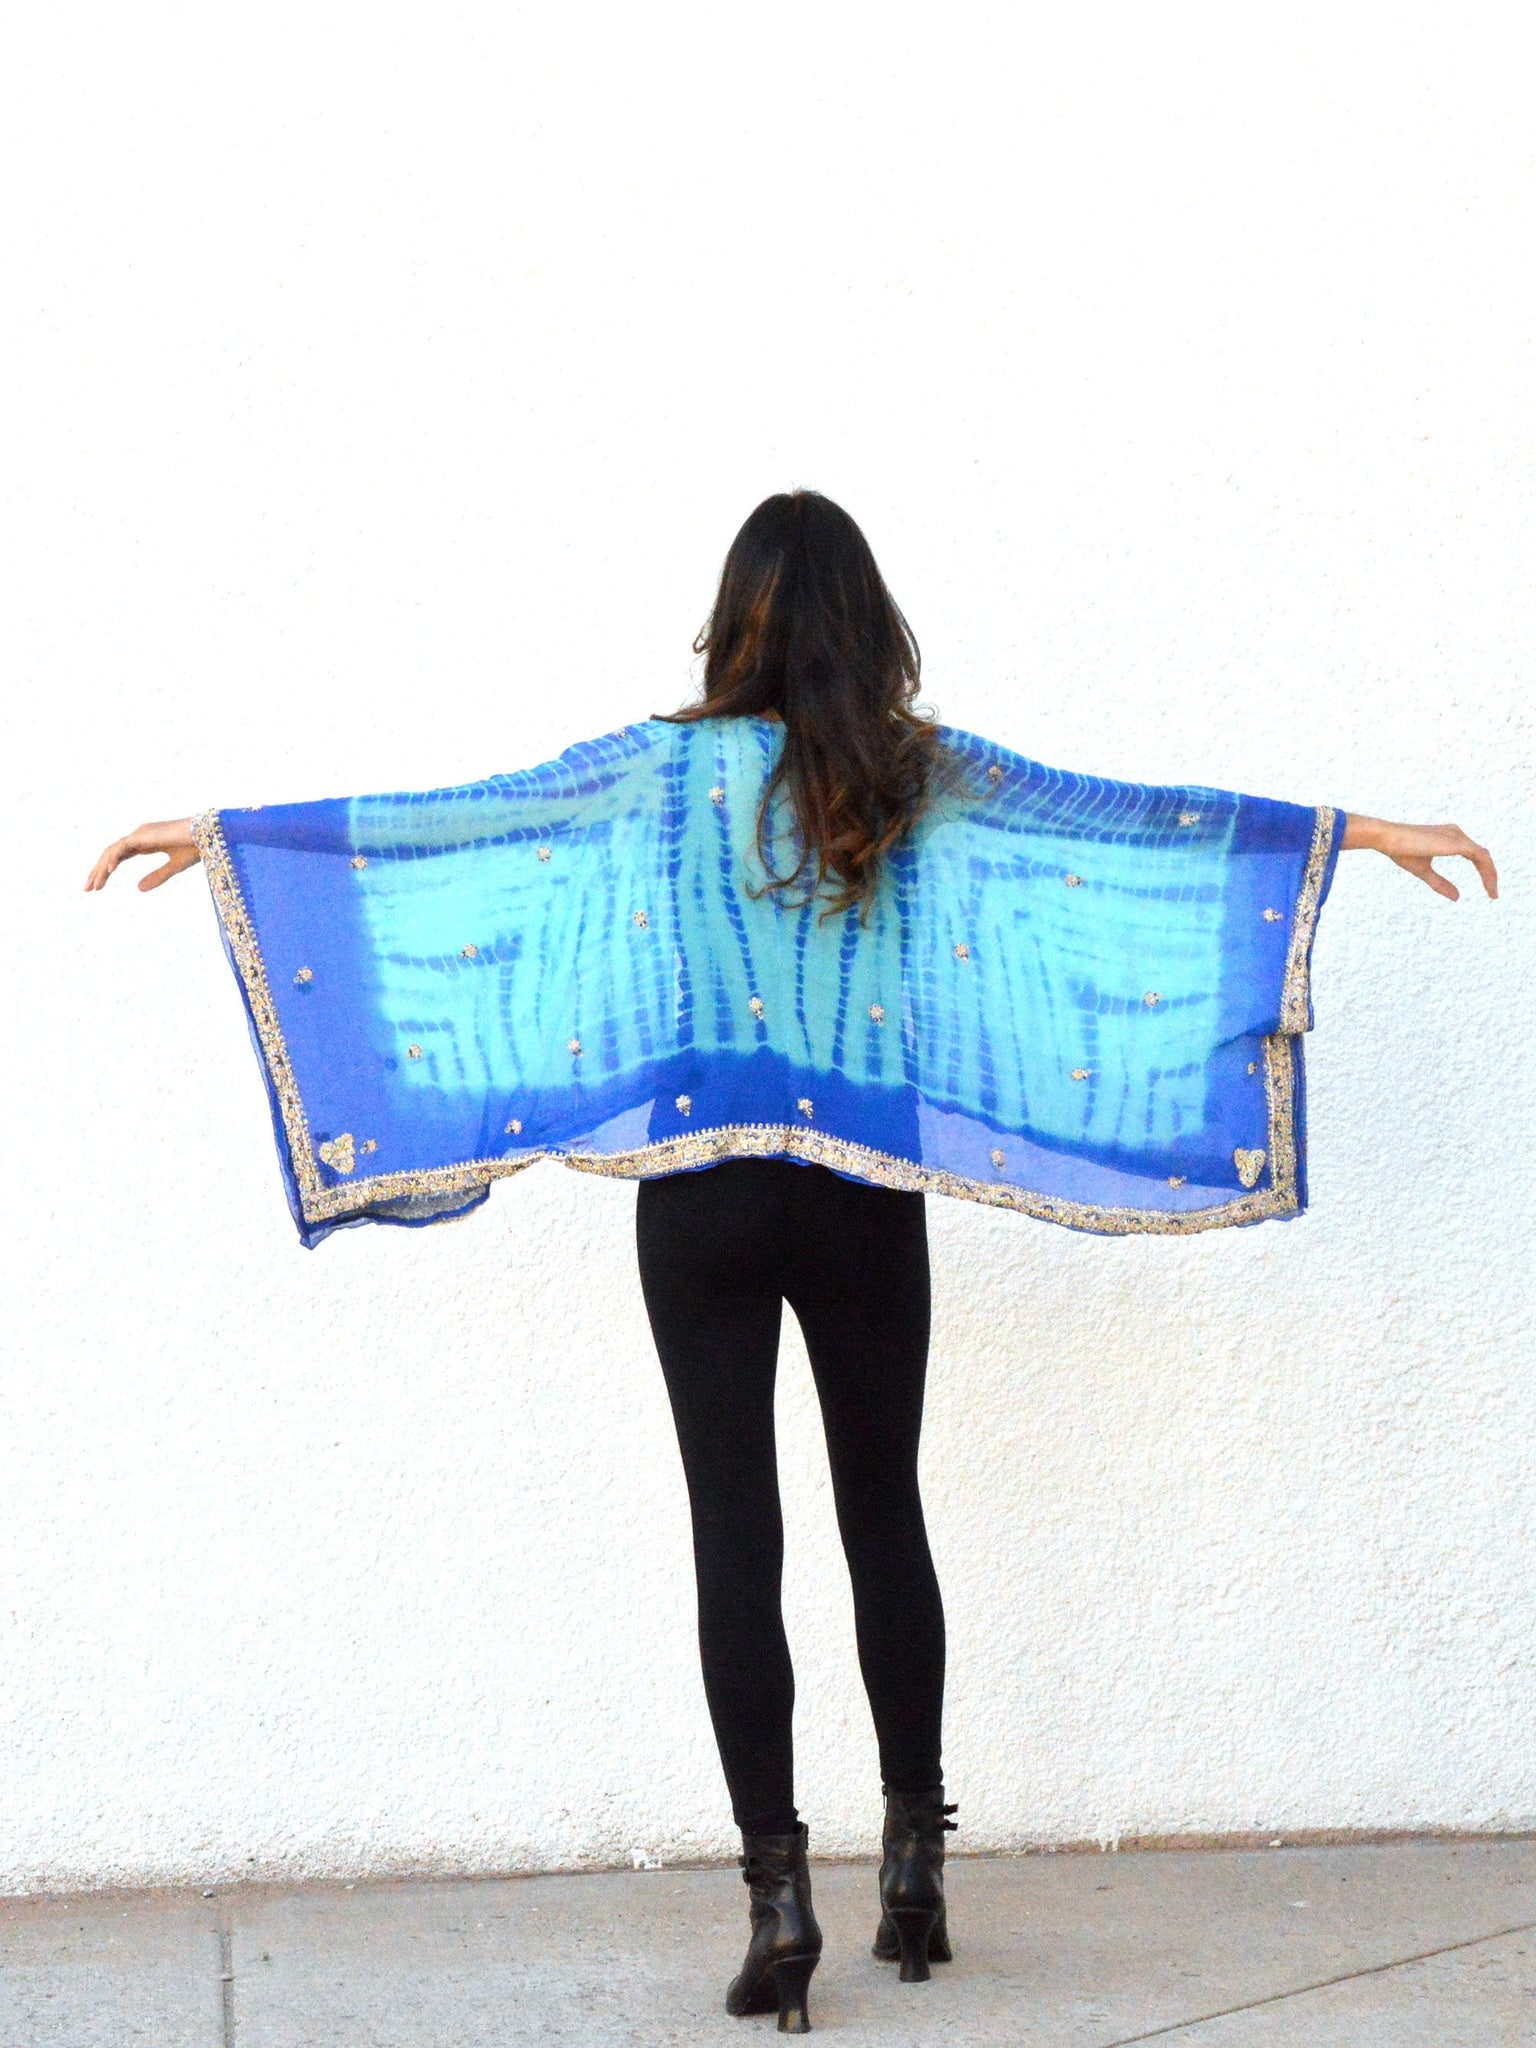 Back view of woman with arms outspread, wearing blue silk cropped kimono jacket.